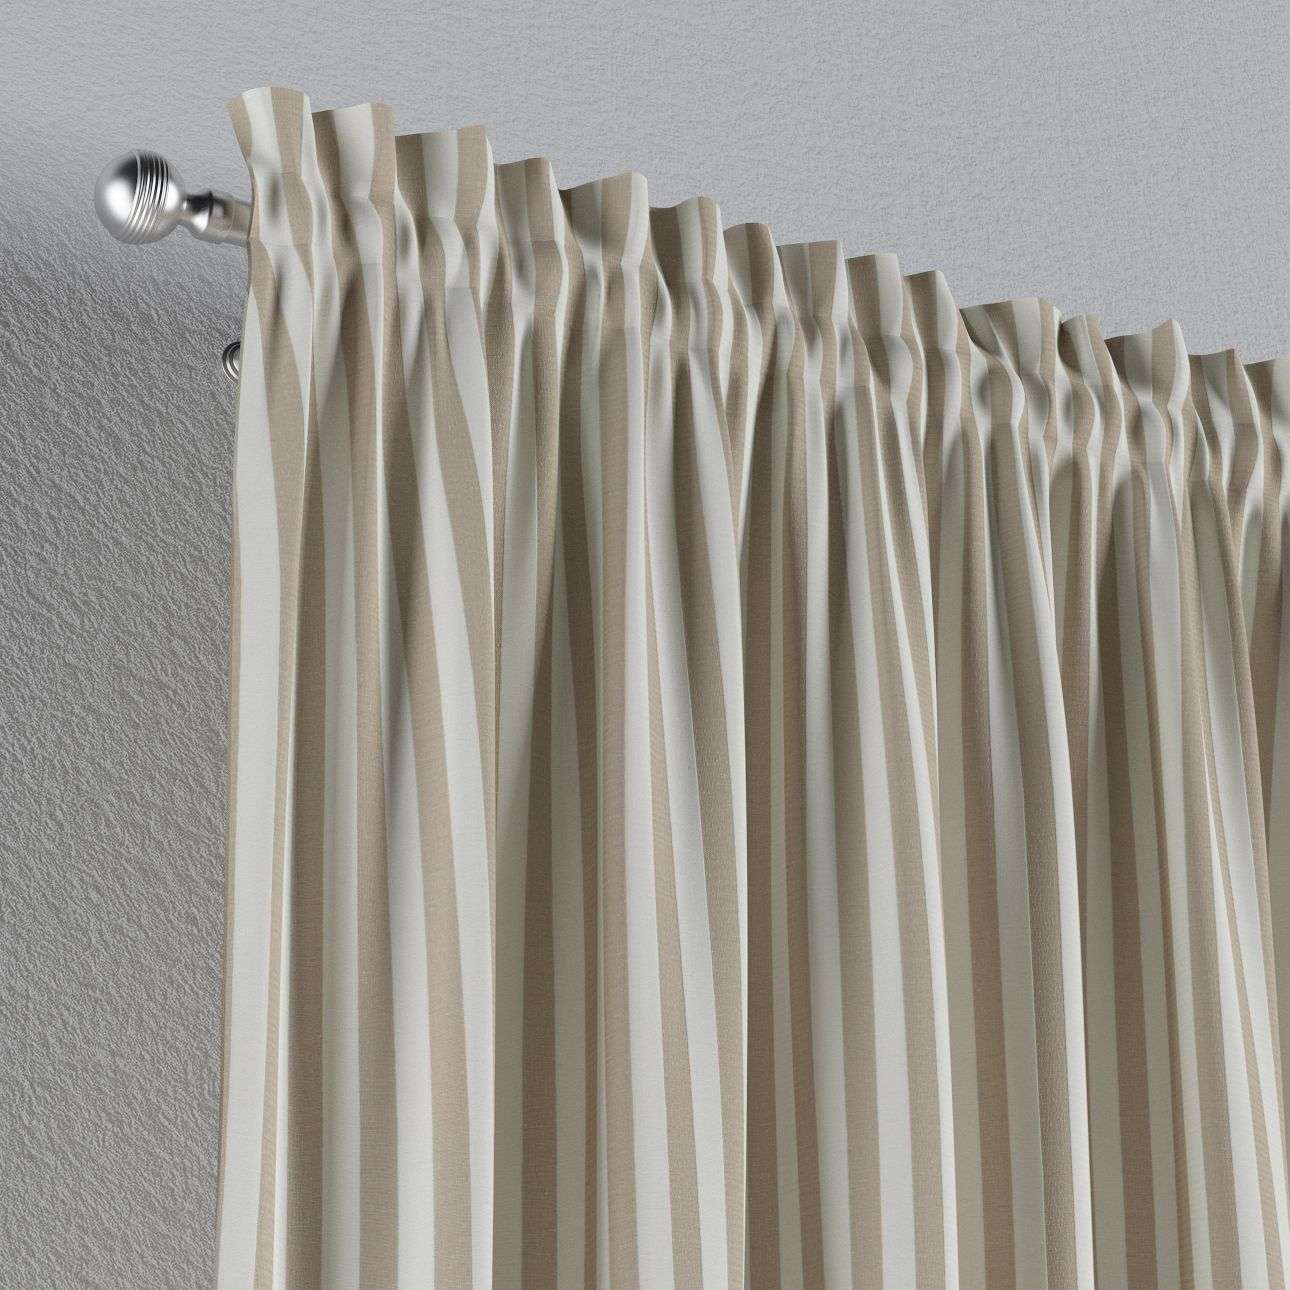 Slot and frill curtains 130 × 260 cm (51 × 102 inch) in collection Quadro, fabric: 136-07